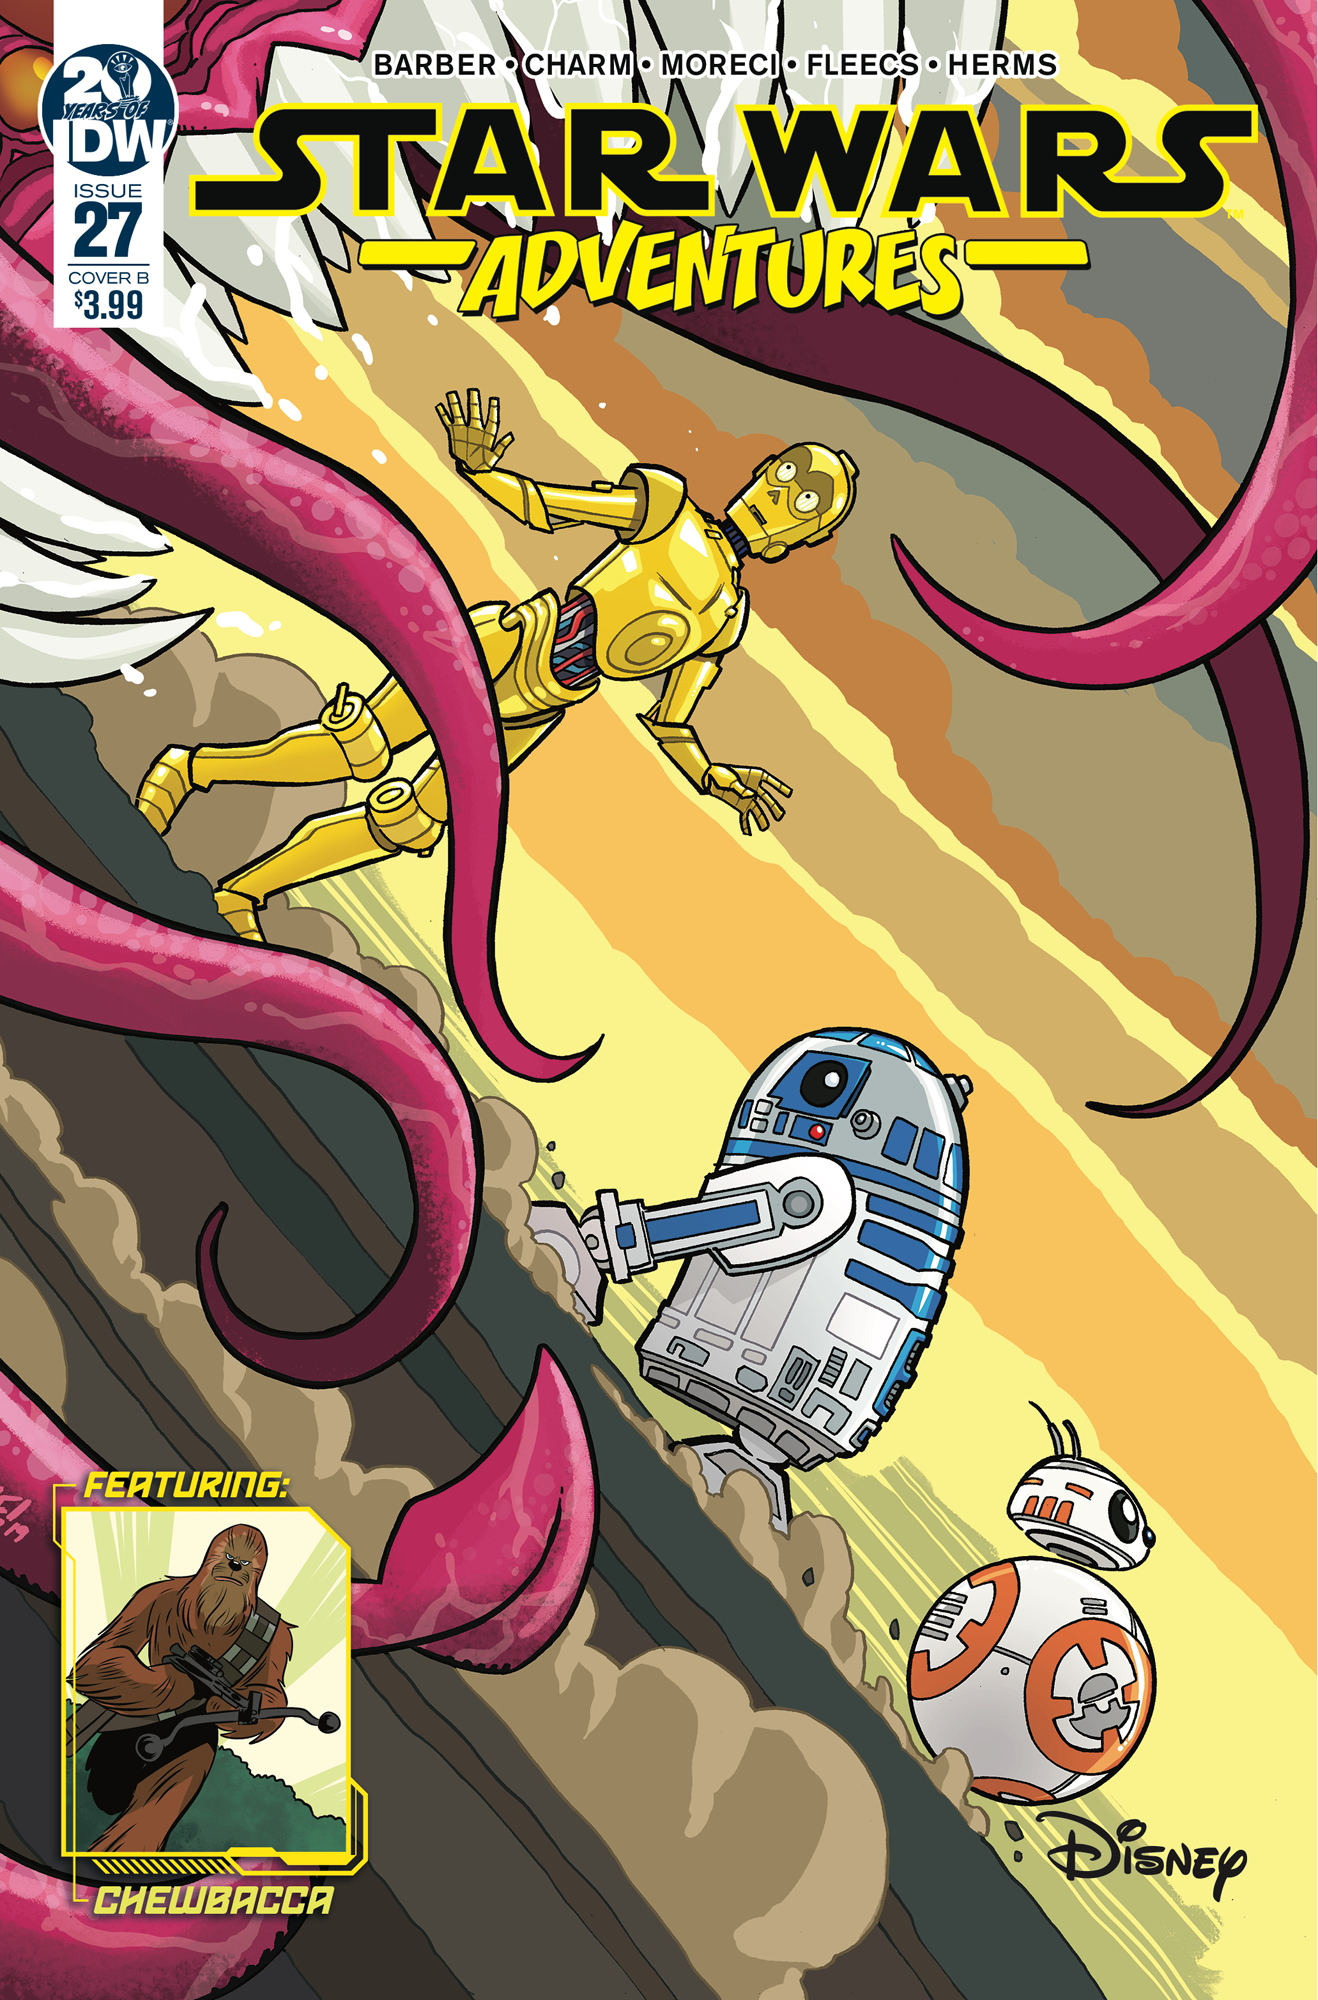 Star Wars Adventures #27 (Cover B by Tony Fleecs) (23.10.2019)